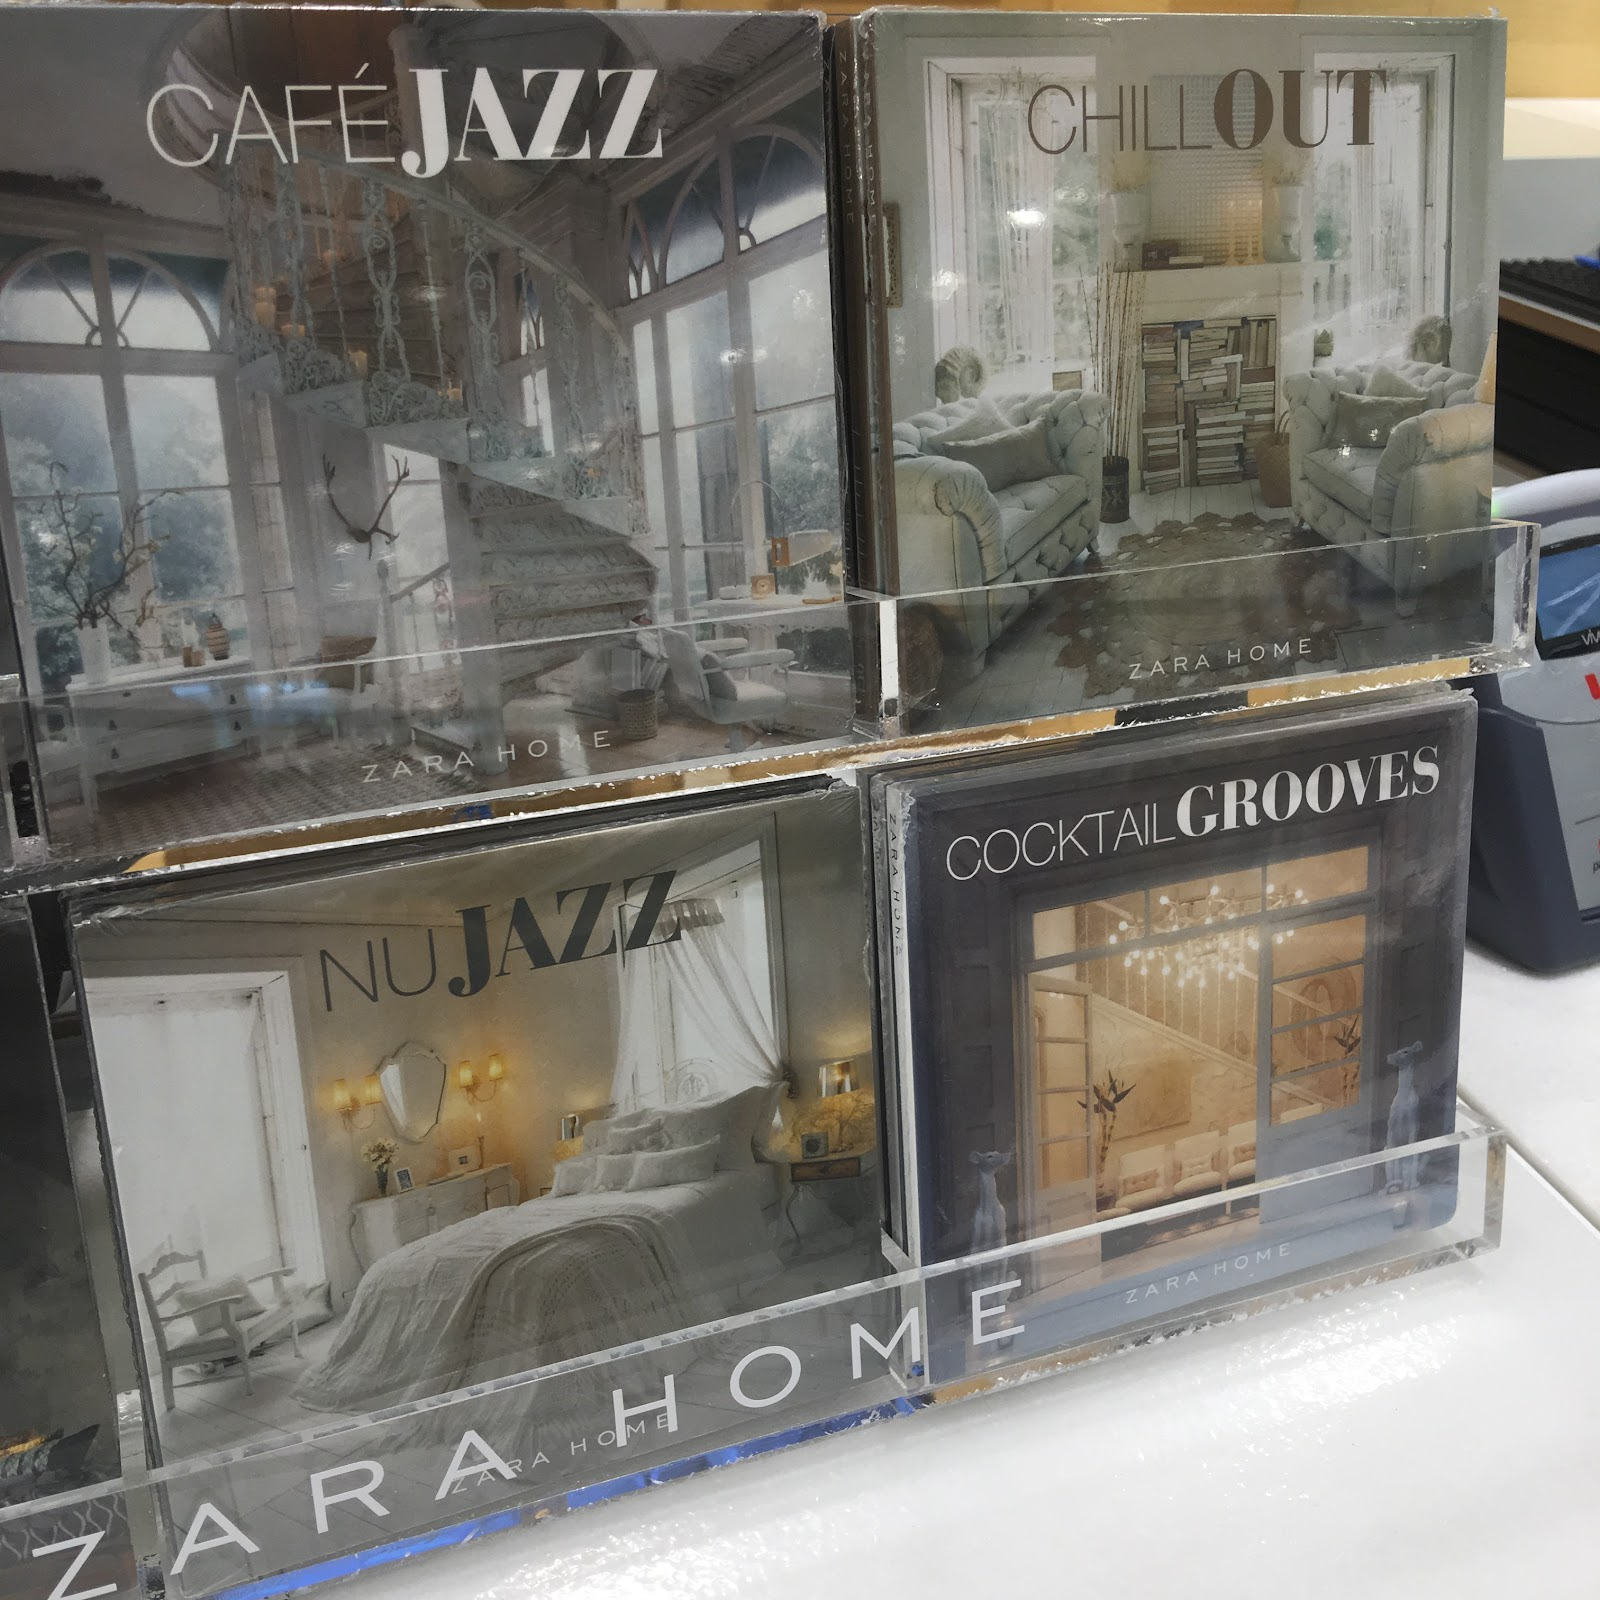 Zara home to open in toronto - In Addition To The Zara Home Range Of Candles And Home Fragrance There S Also Zara Home Music The Largest Piece Of Furniture I Saw On The Floor Were